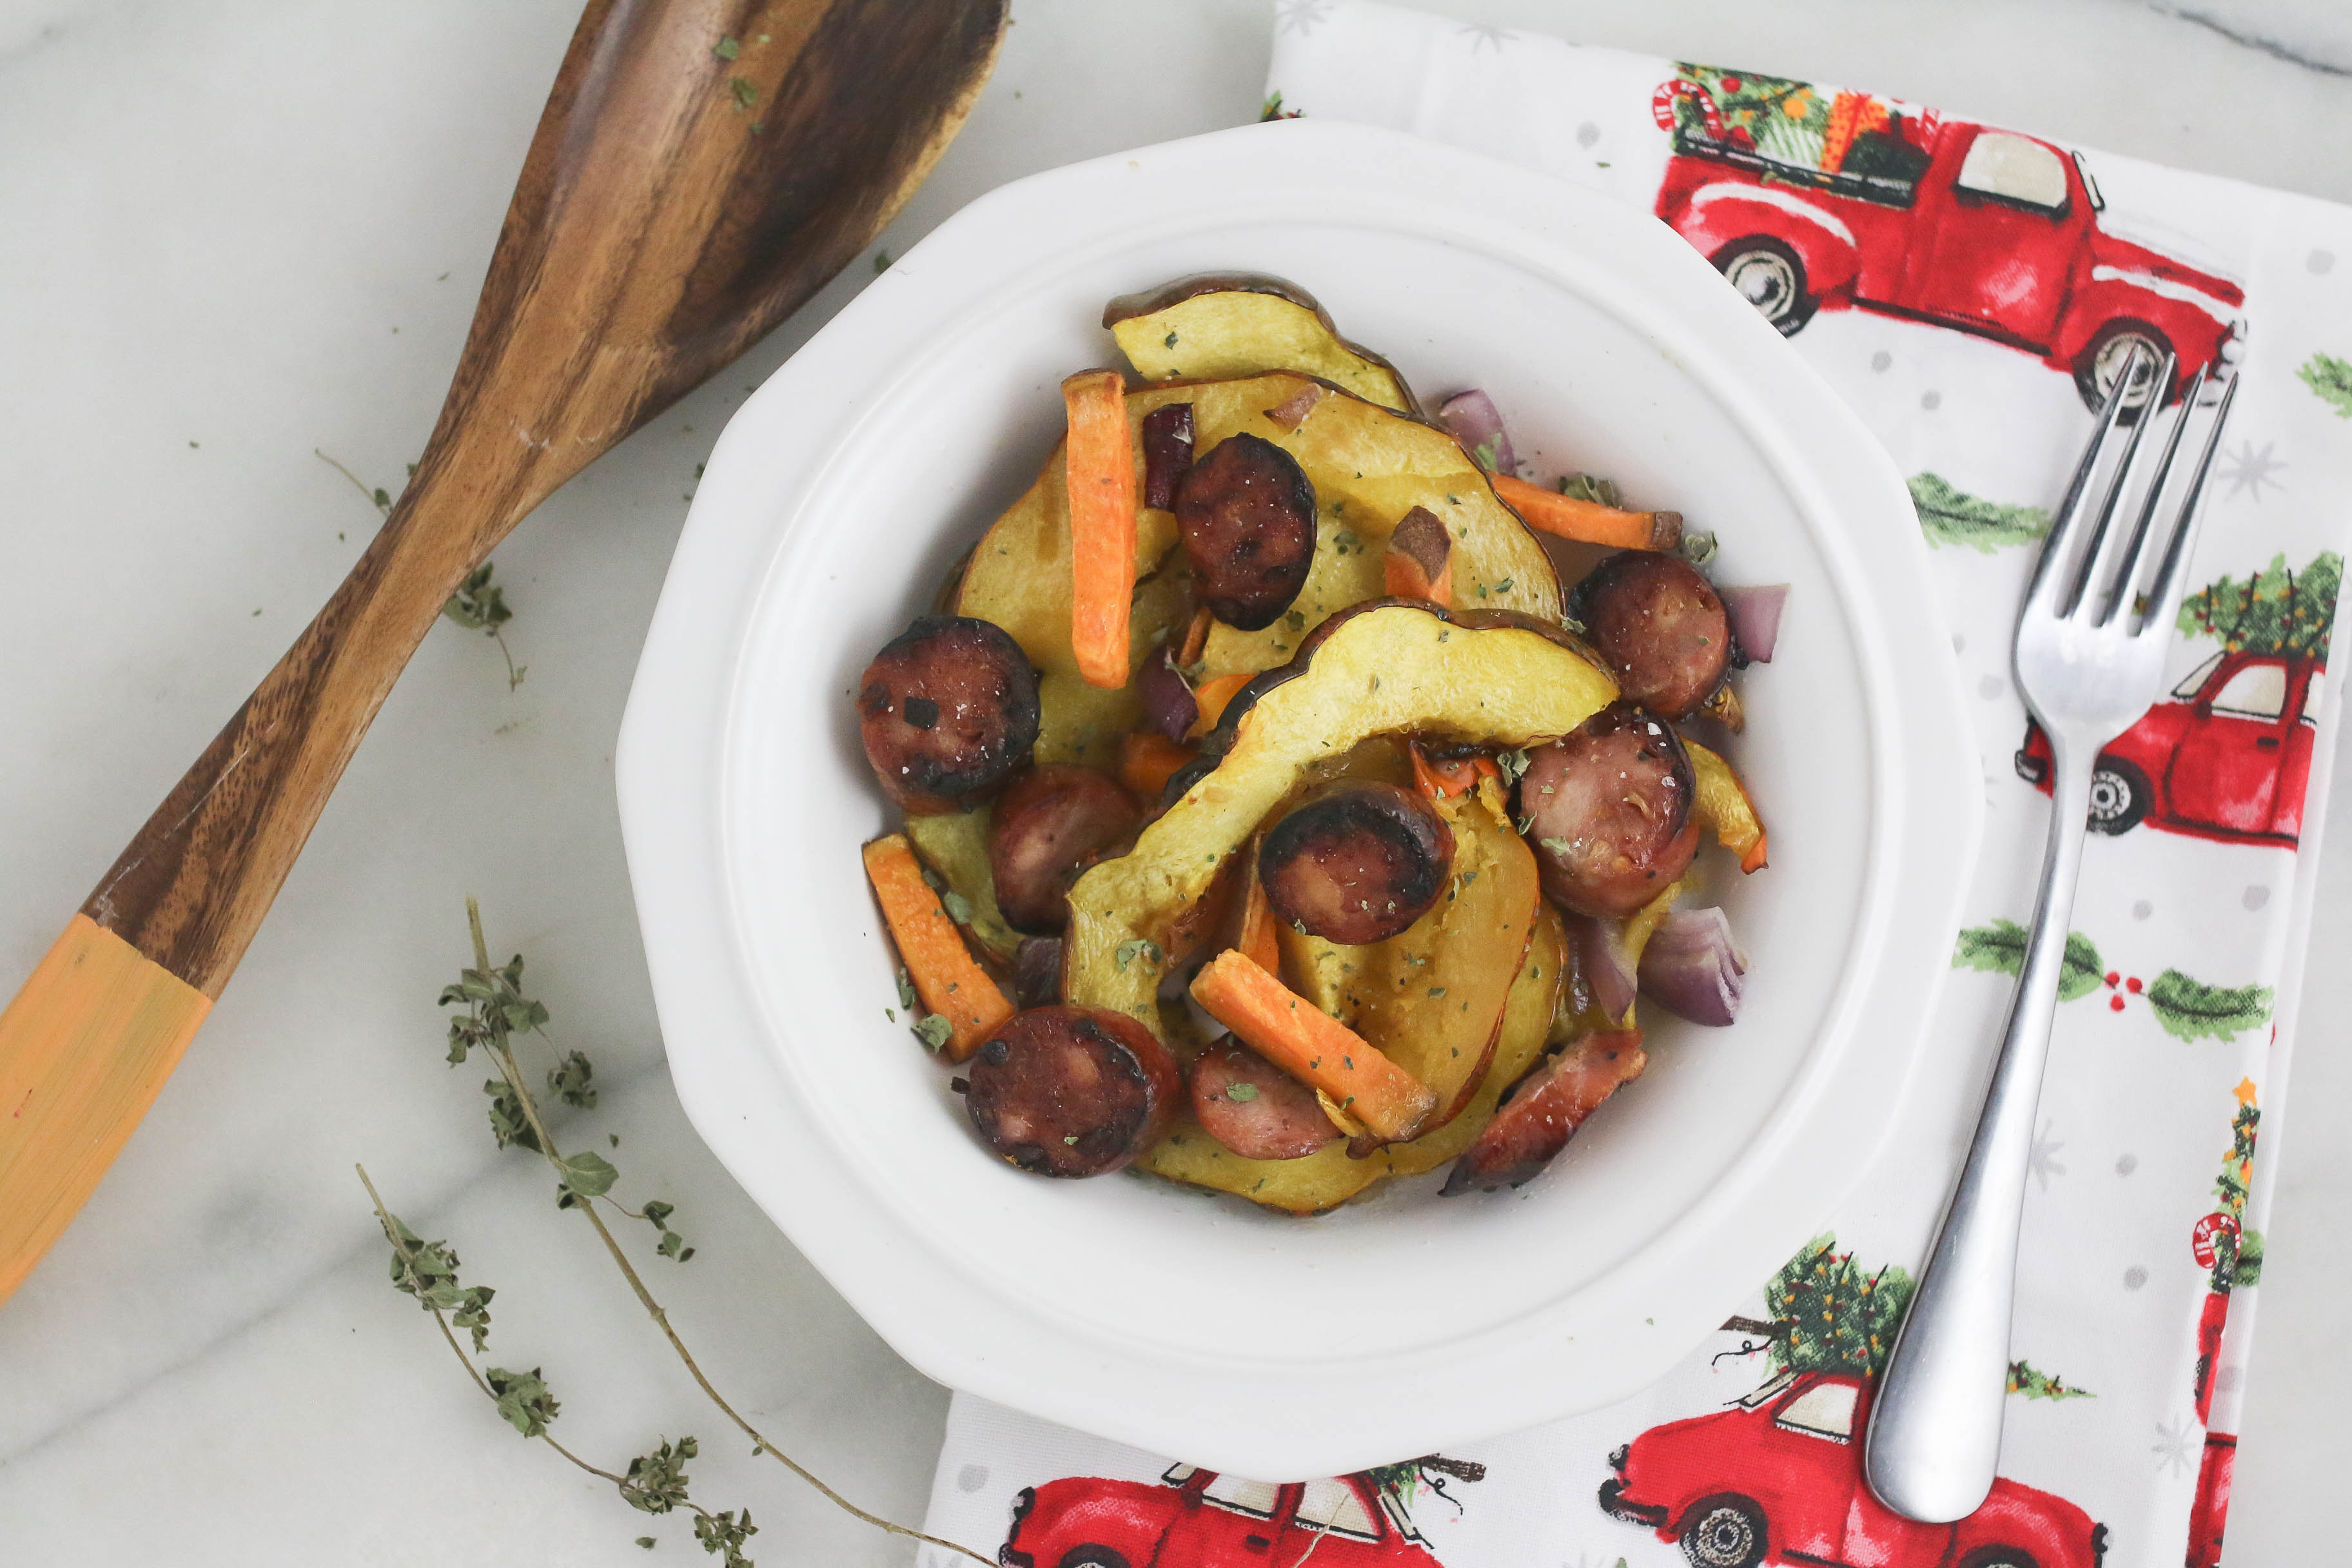 Chicken apple sausage and acorn squash one pan meal. So easy! Can completely make ahead then throw in the oven.